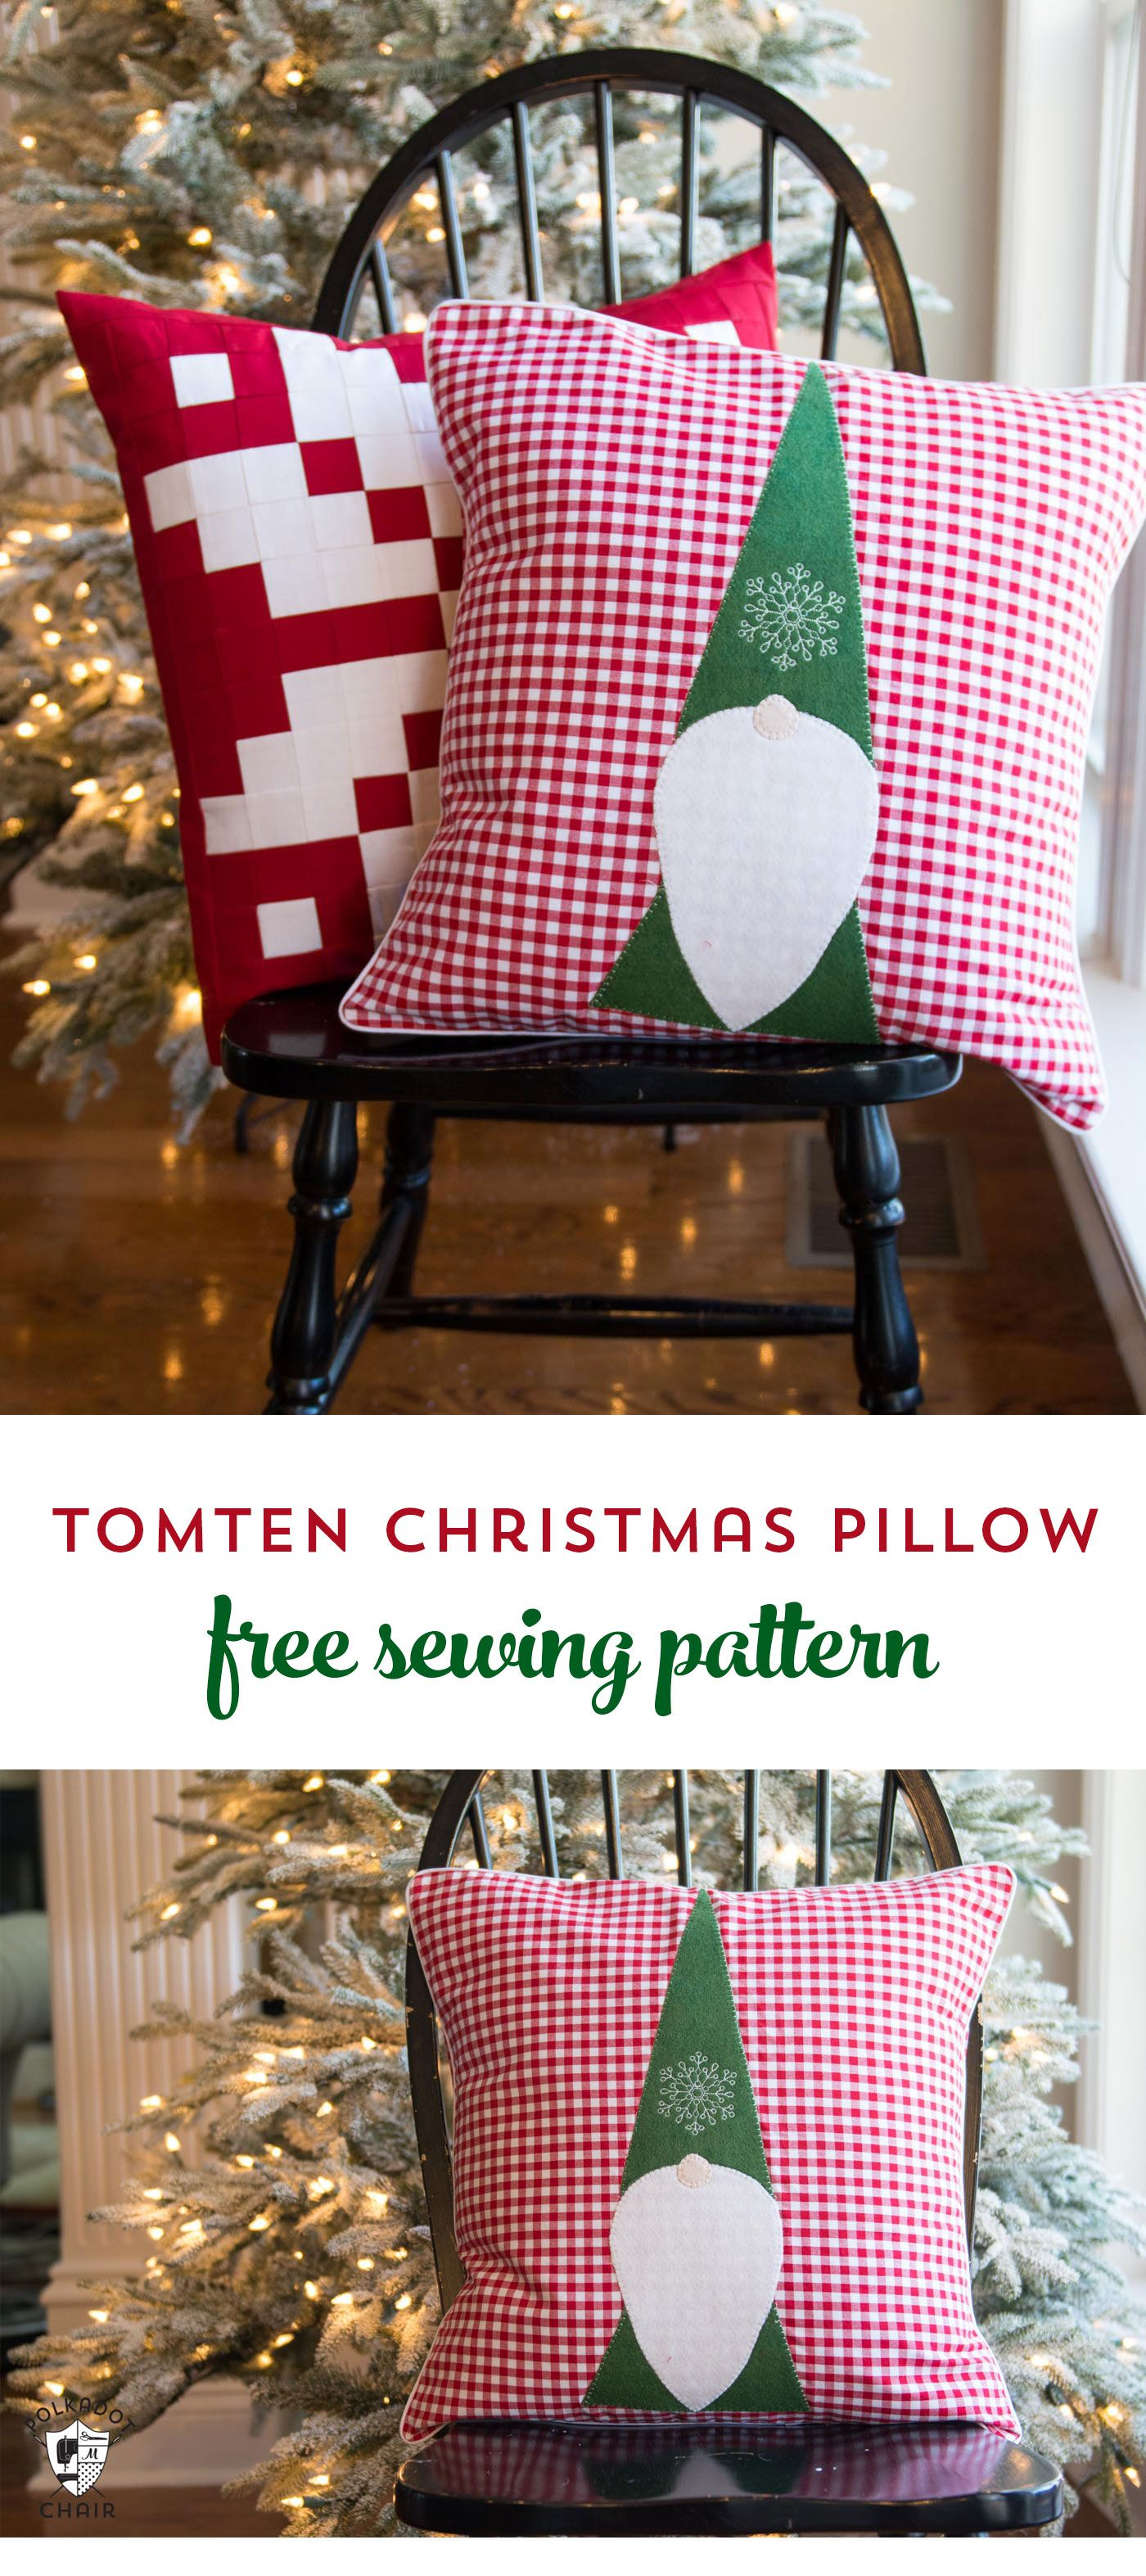 Tomte christmas gnome pillow pattern christmas gnome diy free sewing pattern for a tomten christmas gnome pillow makes a cute diy christmas decoration jeuxipadfo Gallery